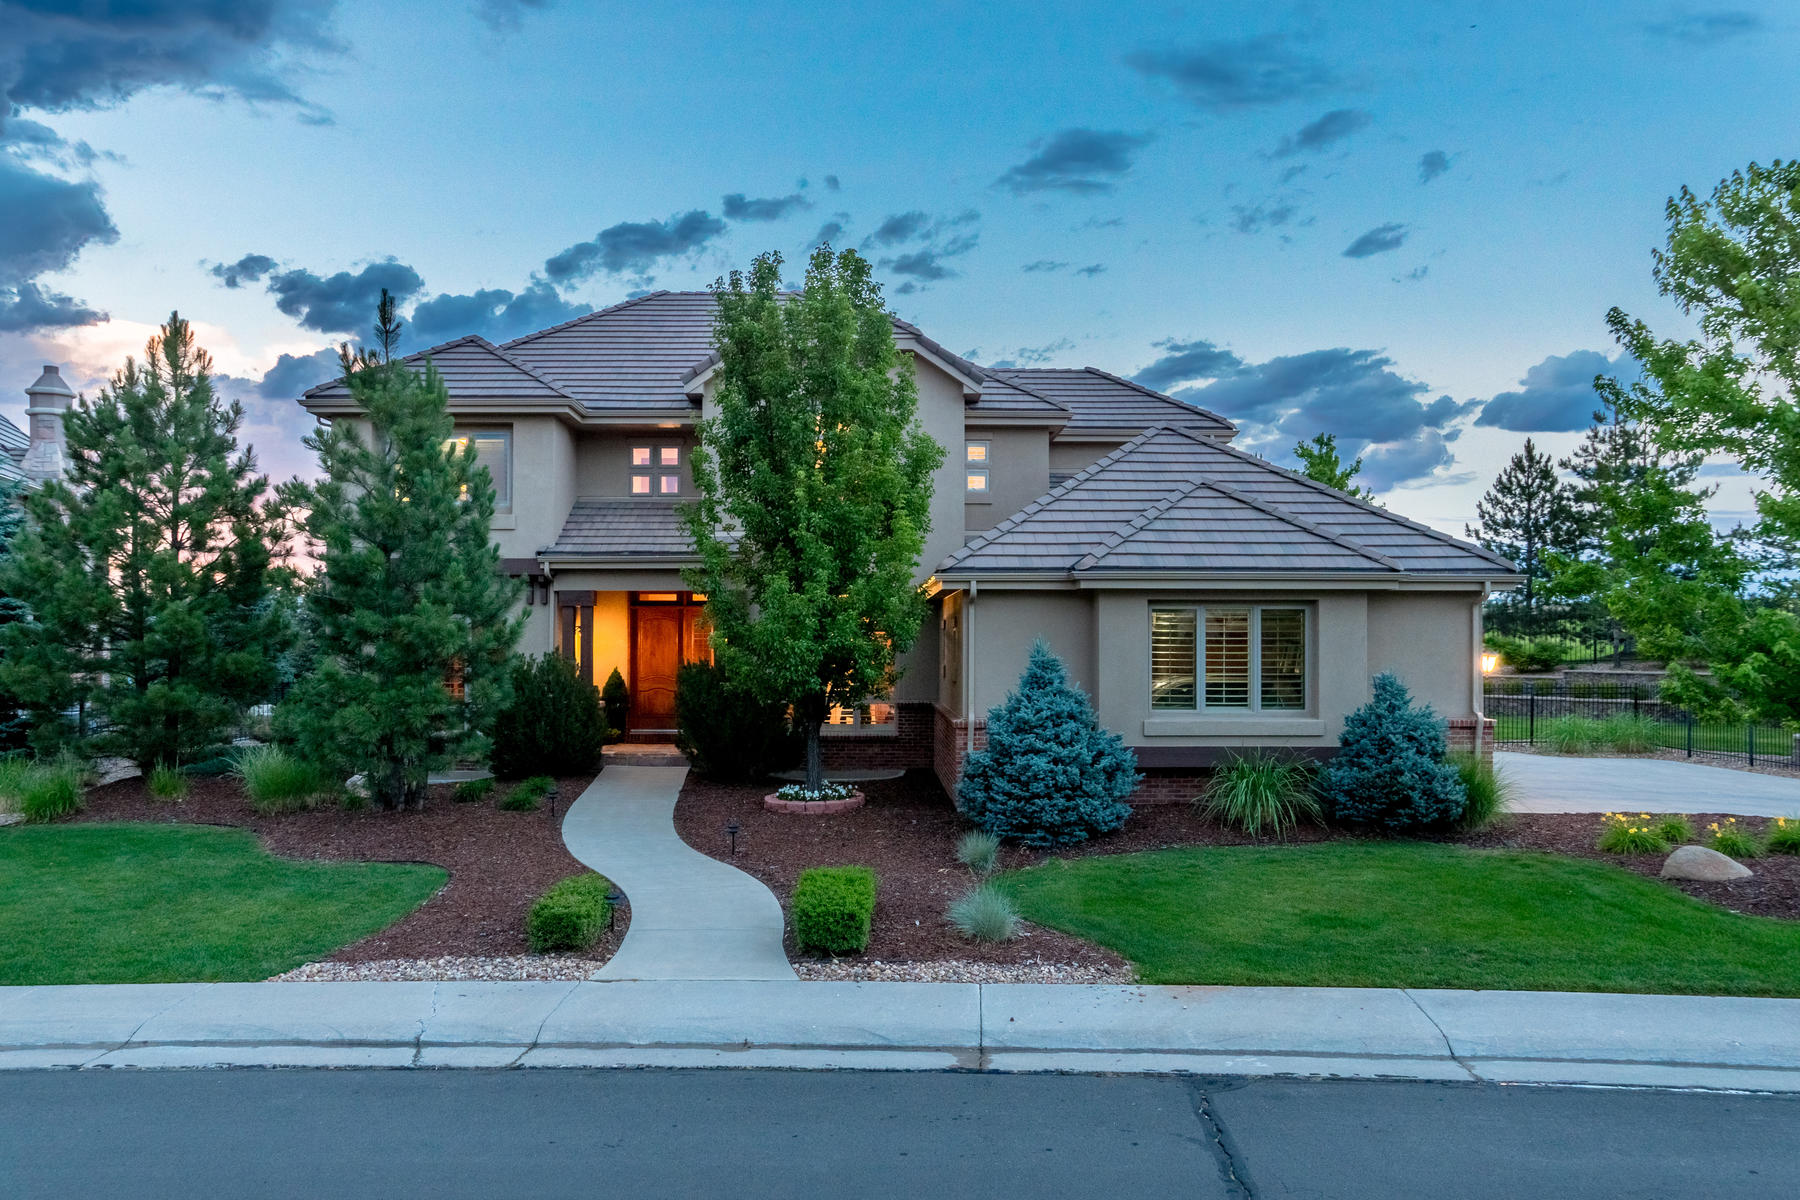 Single Family Home for Active at Welcome to the backyard oasis of your dreams 10258 Dowling Way Highlands Ranch, Colorado 80126 United States